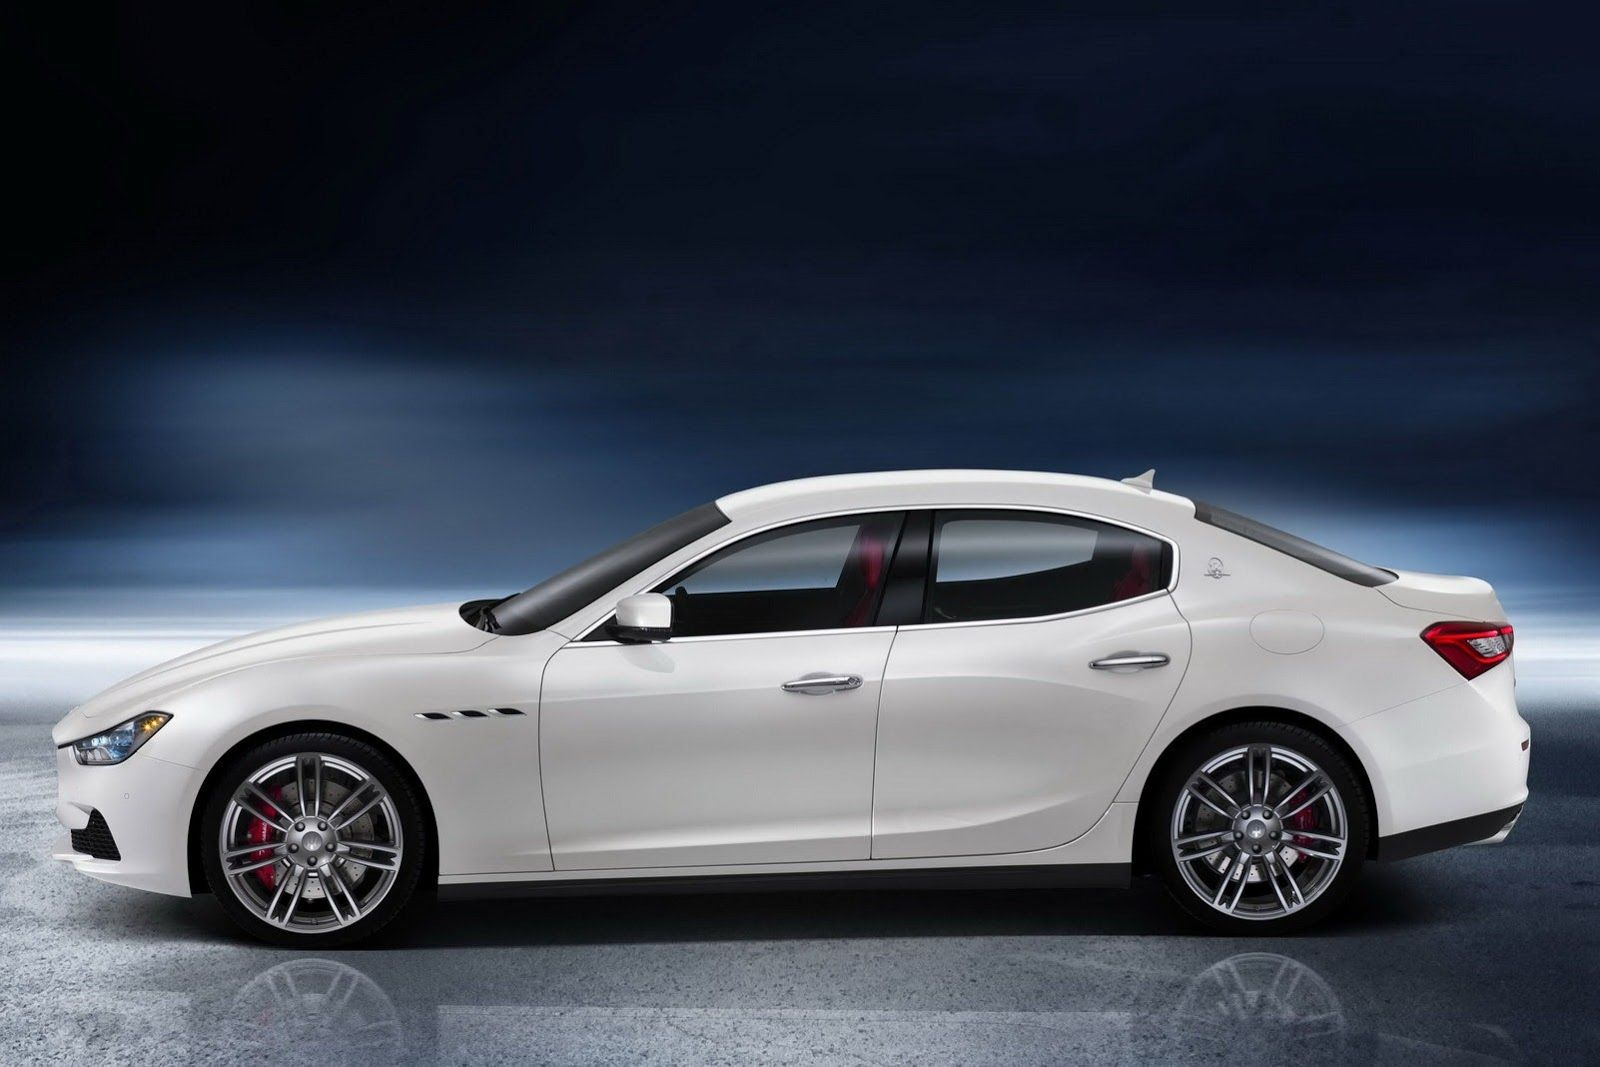 2016 maserati ghibli is the featured model the 2016 maserati ghibli s image is added in car pictures category by the author on aug